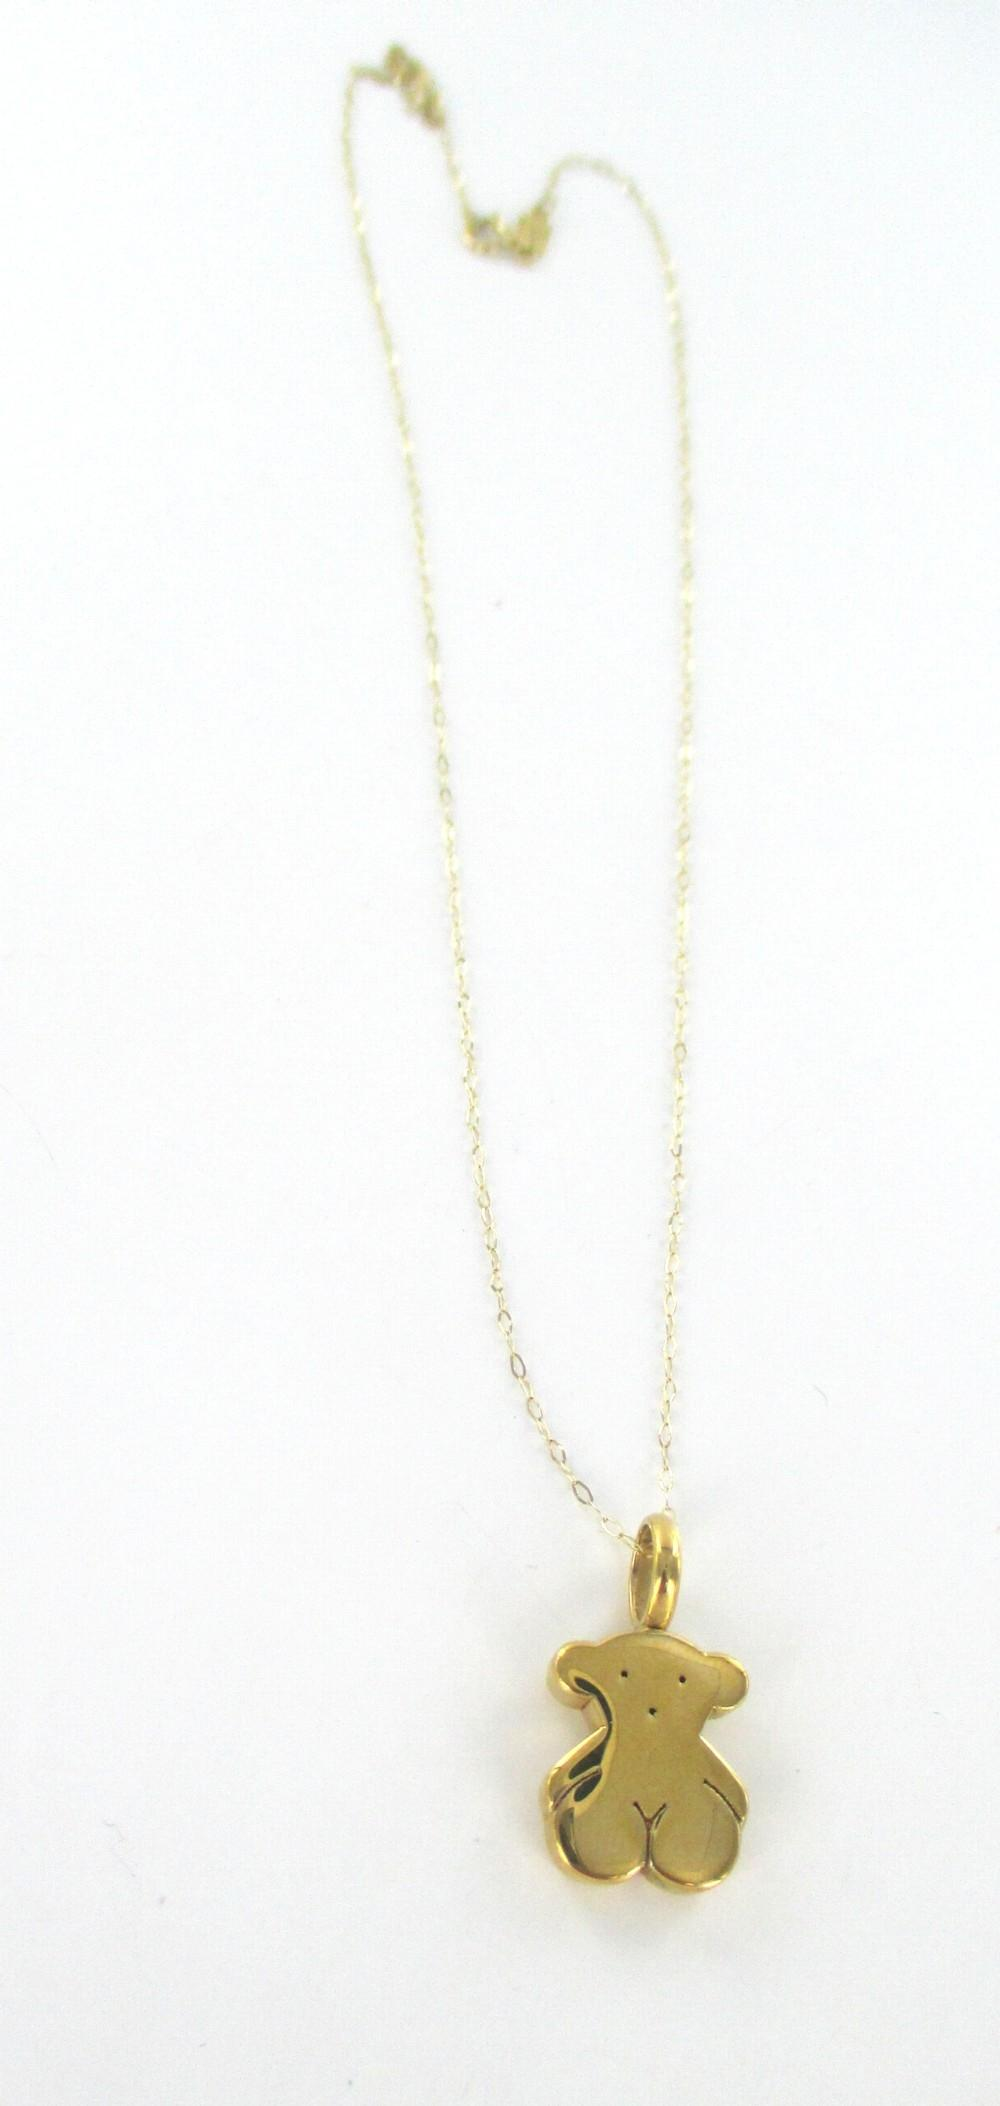 TOUS Gold Necklace TOUS Jewelry Tradesy